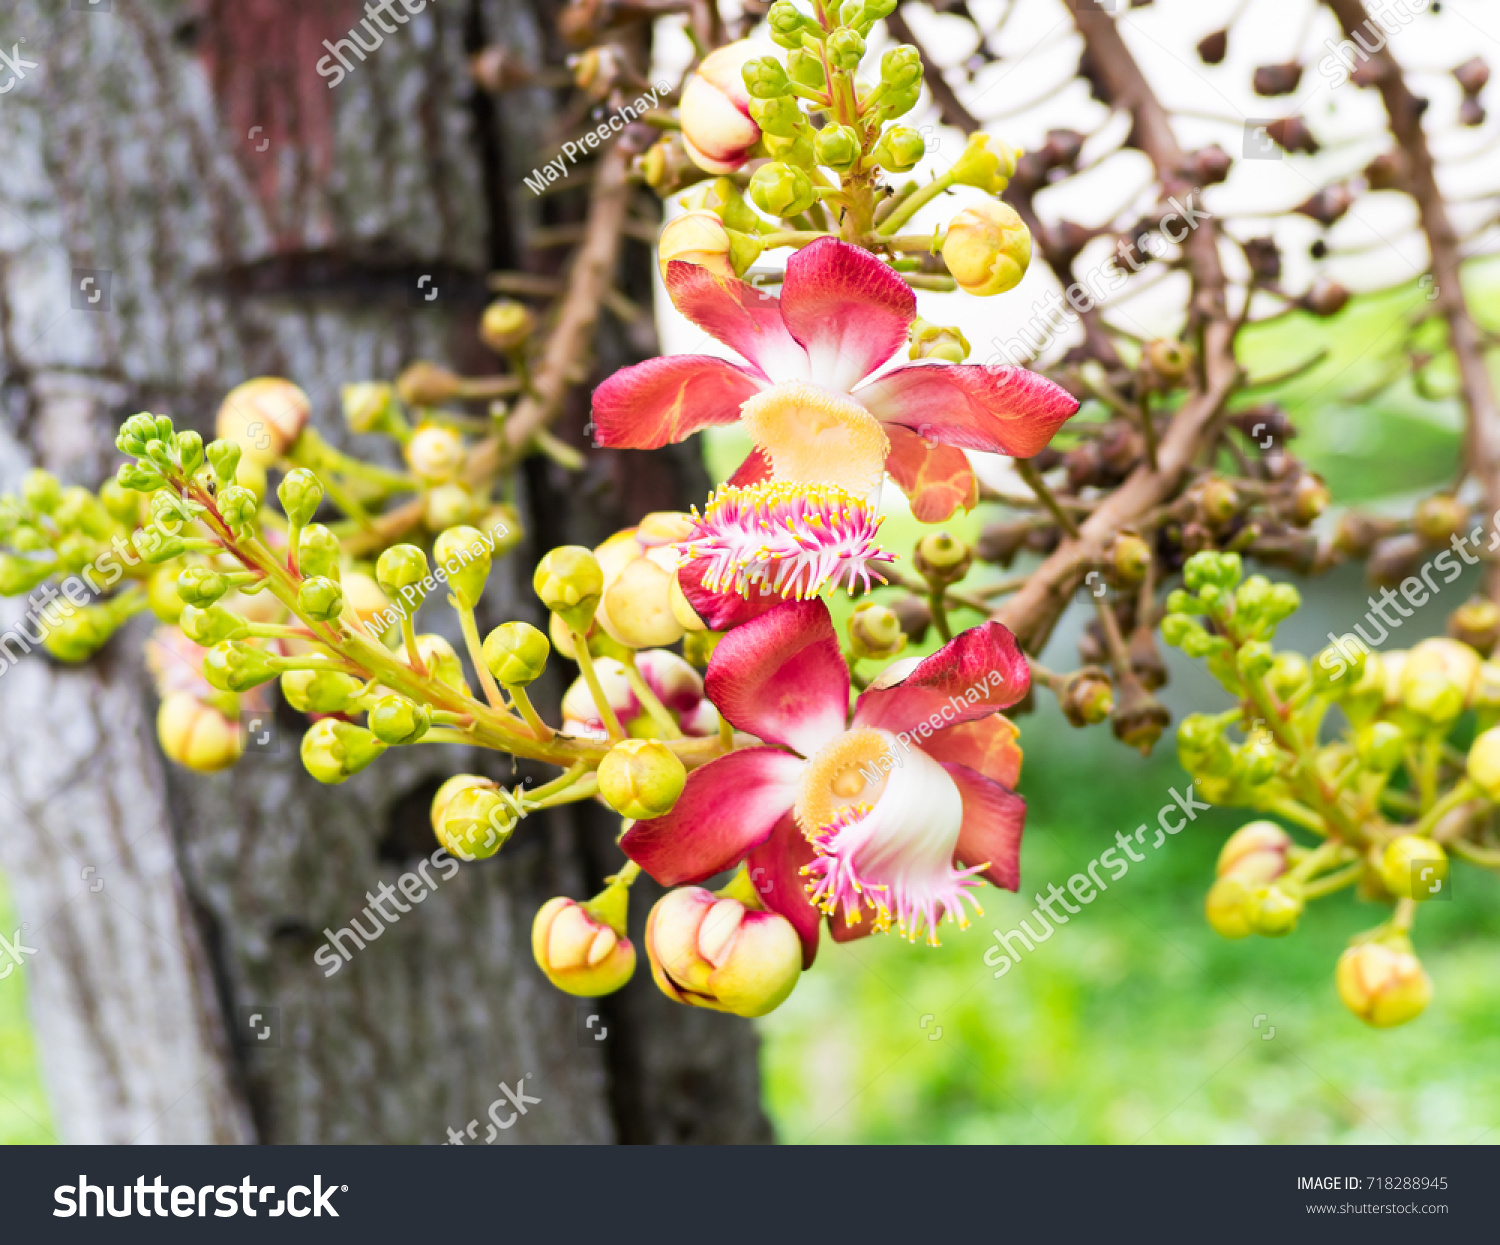 Guianensis aubl beautiful sal flowers india stock photo edit now beautiful sal flowers of india flowering flower blossom on cannonball tree izmirmasajfo